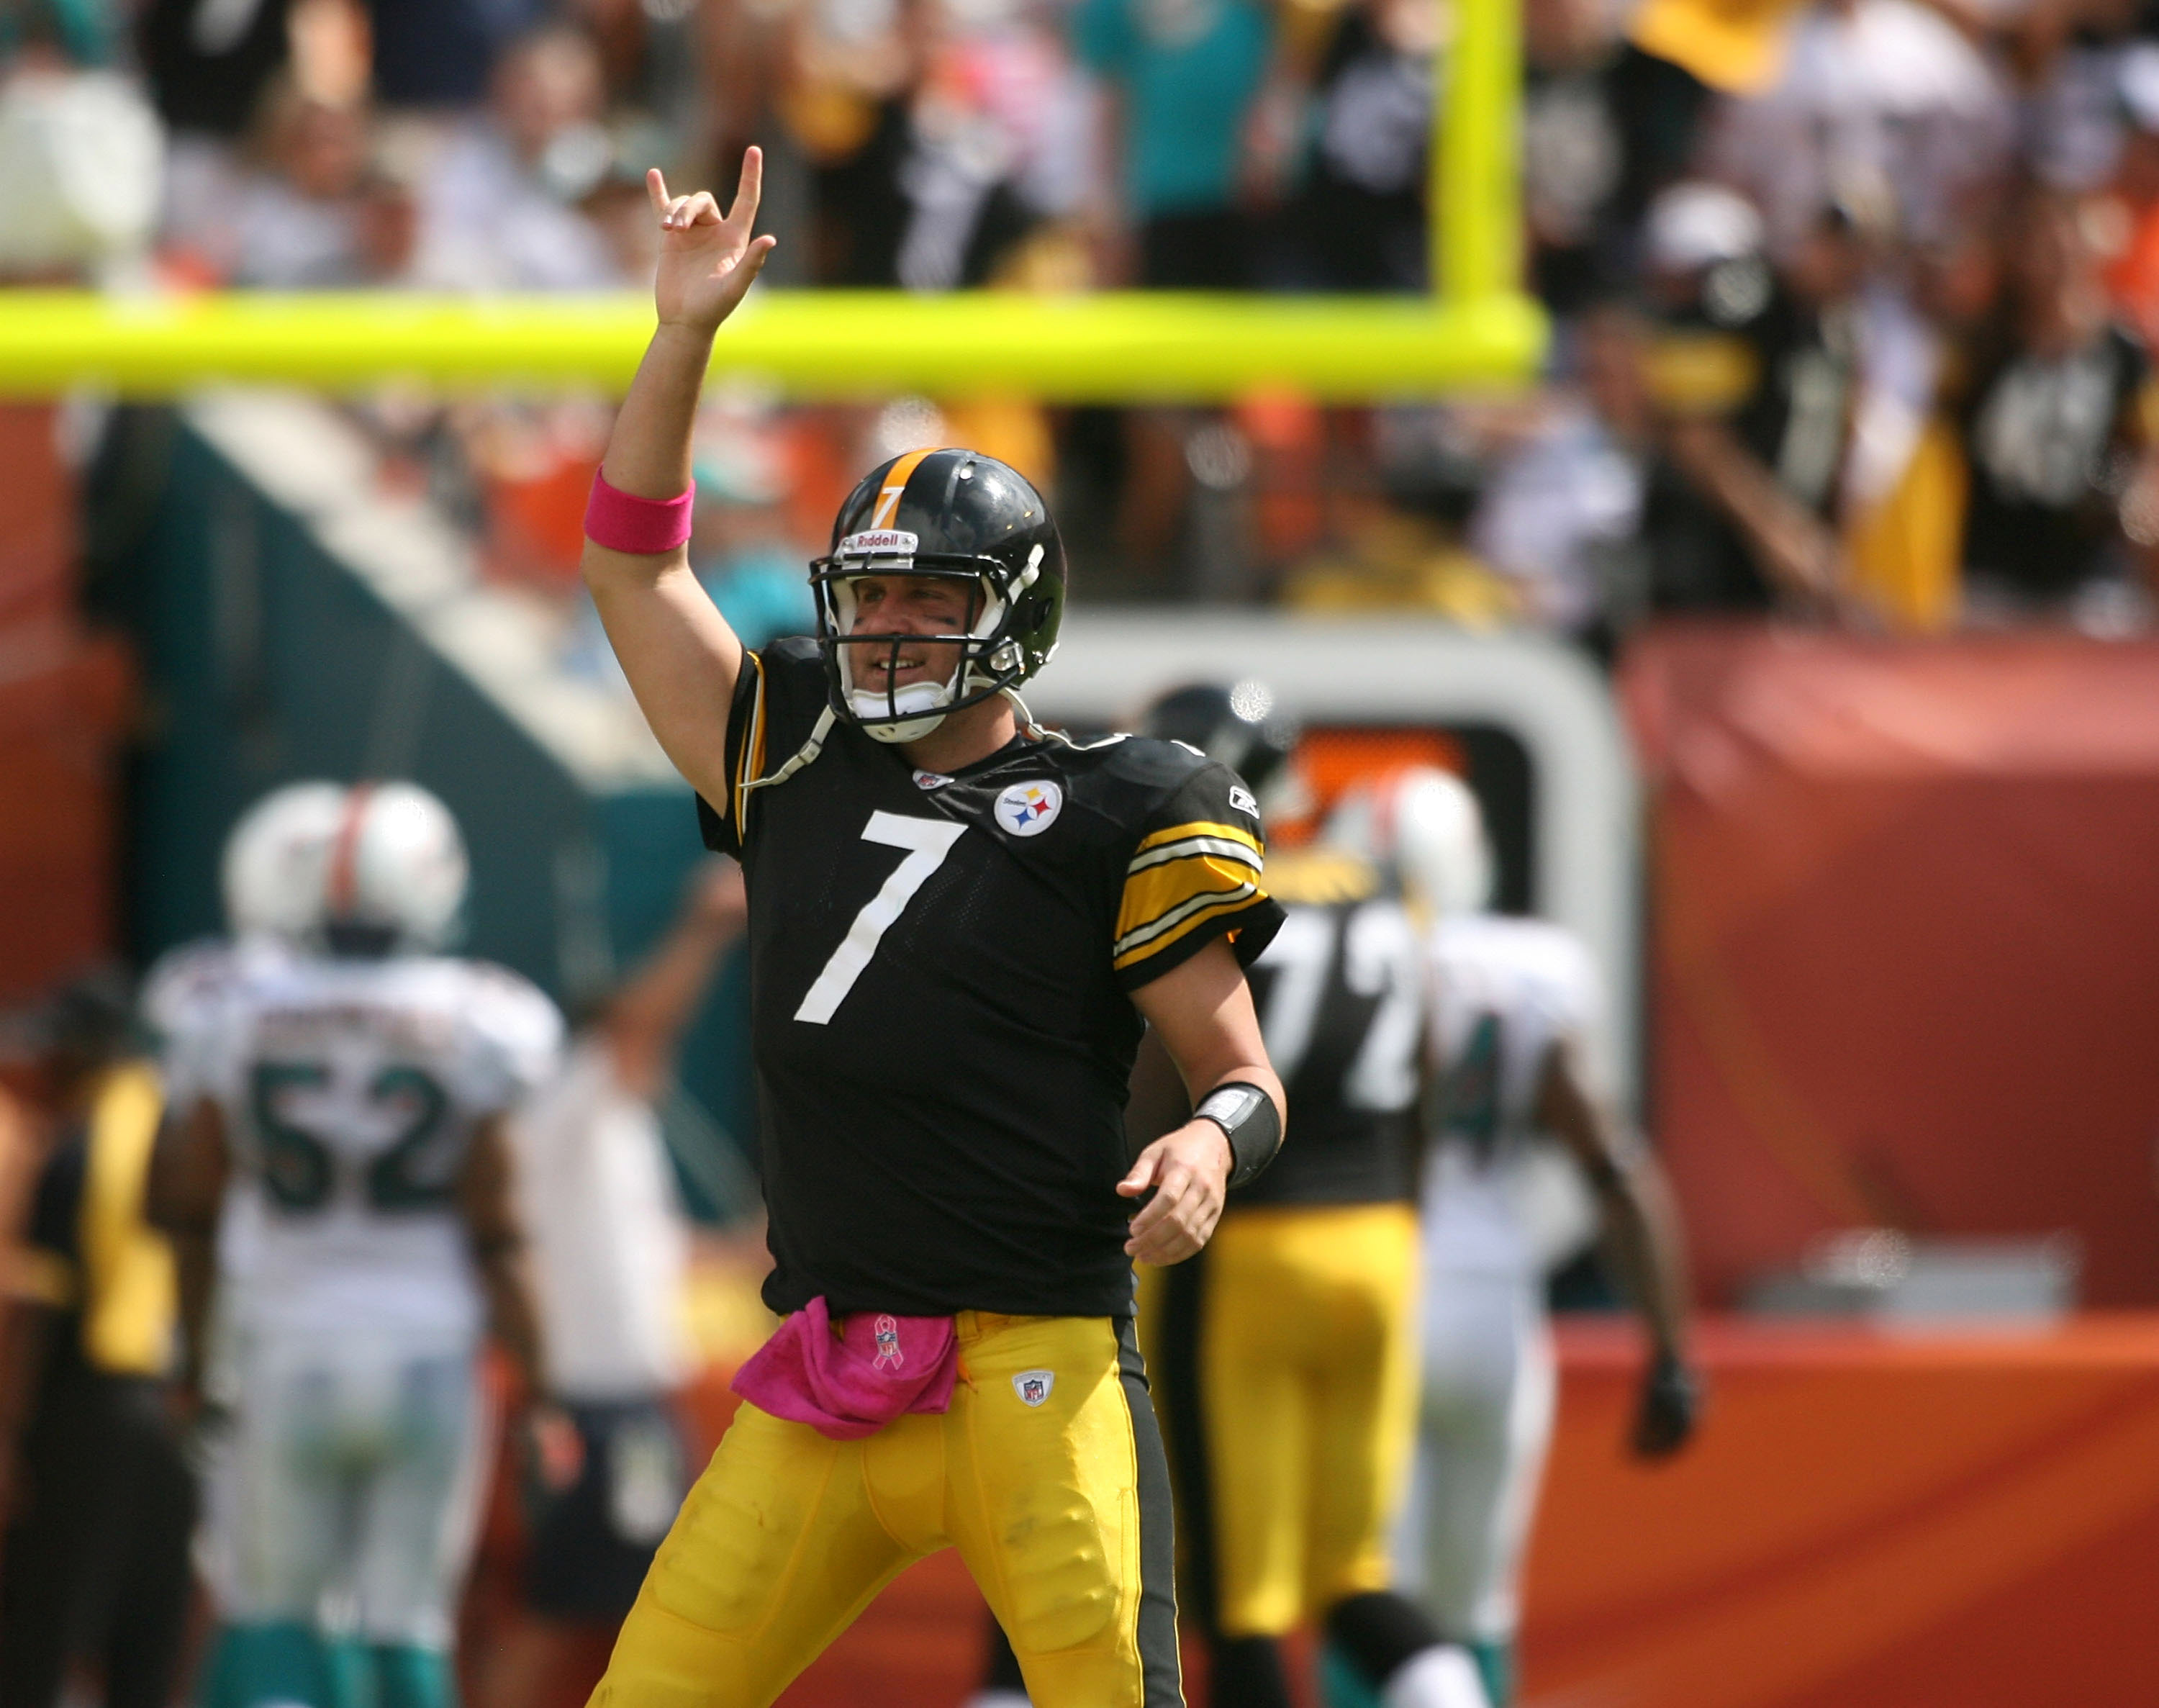 MIAMI - OCTOBER 24:  Quarterback Ben Roethlisberger #7 celebrates a touchdown against the Miami Dolphins at Sun Life Stadium on October 24, 2010 in Miami, Florida.  (Photo by Marc Serota/Getty Images)